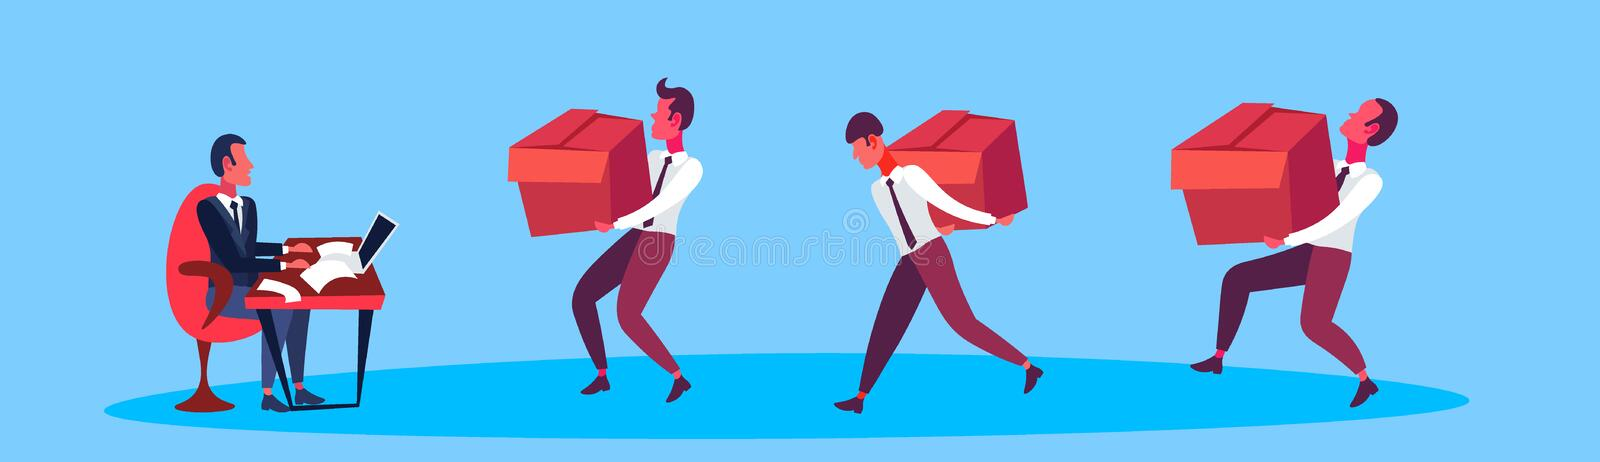 Courier men carrying box delivery package to businessman leader business men working together holding cardboard parcel vector illustration